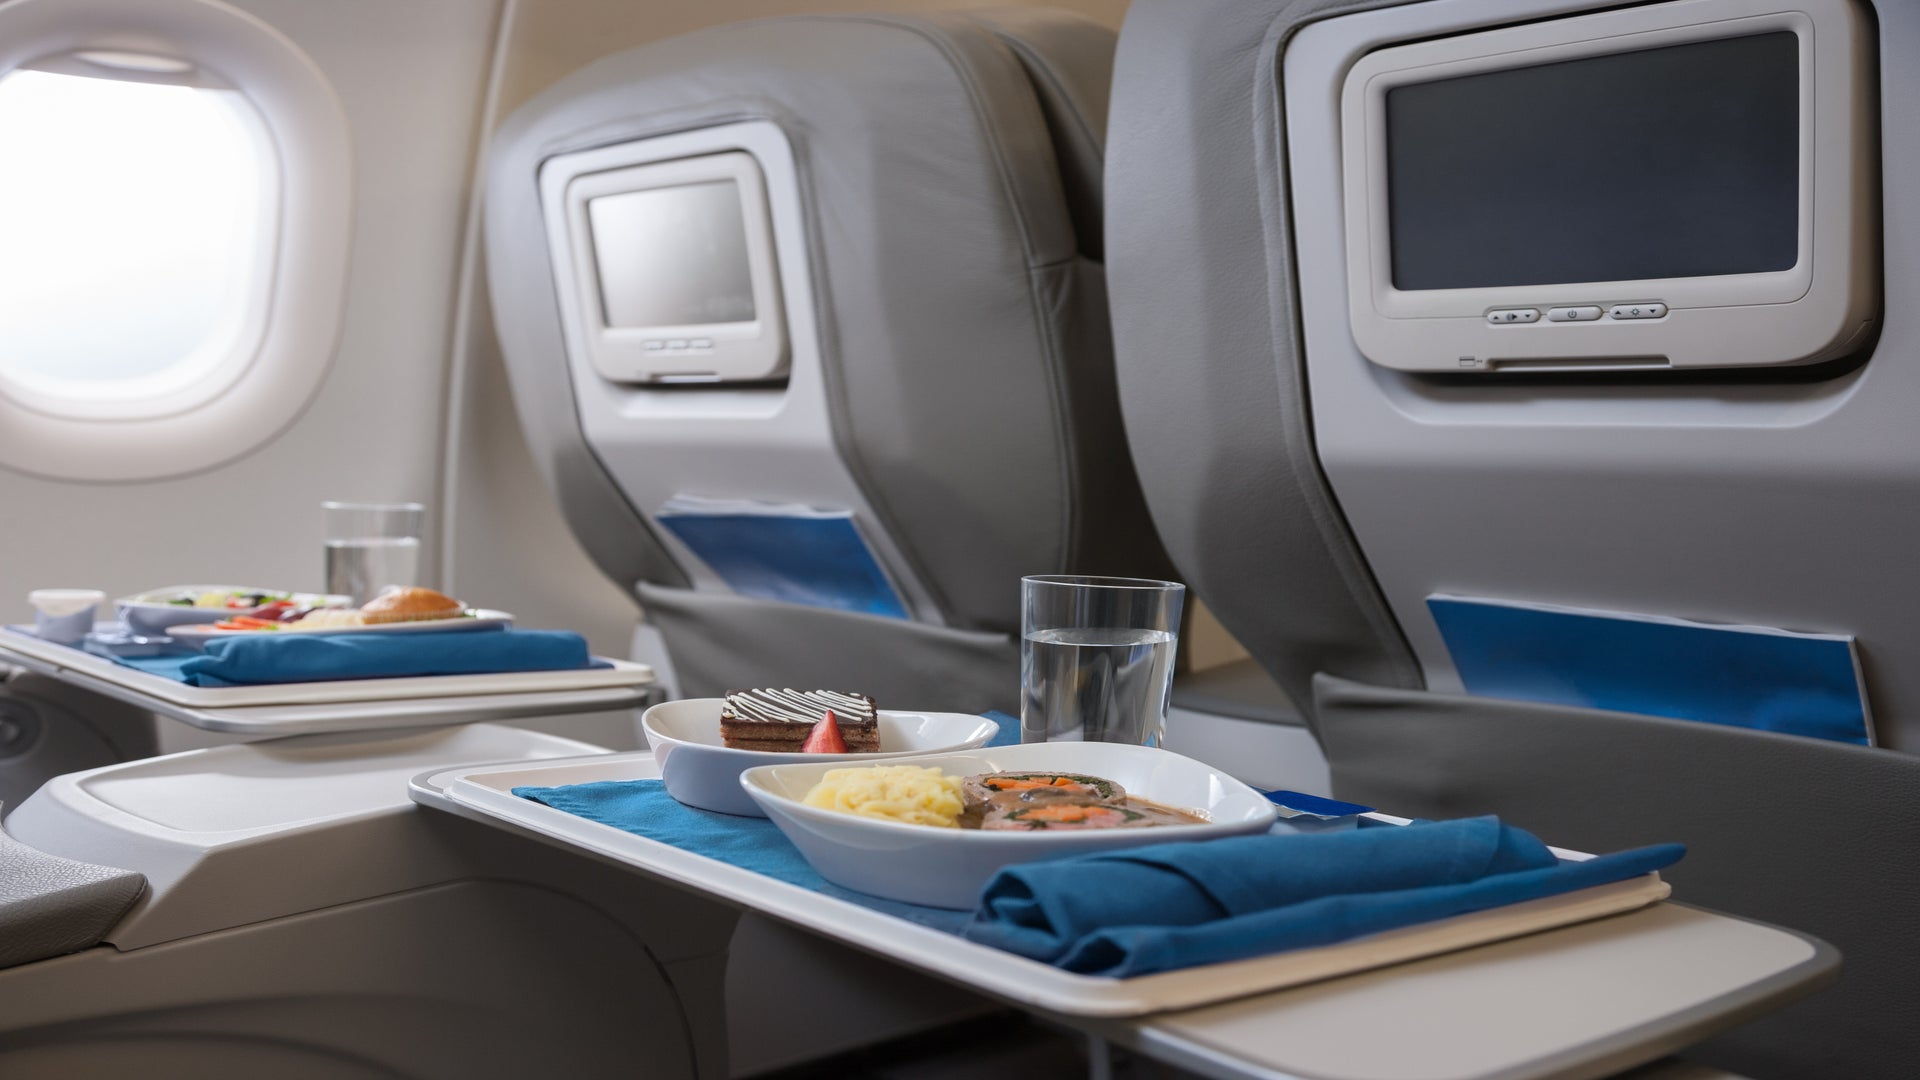 These Airlines Offer Free Meals (Not Just Snacks) On Their U.S. Flights